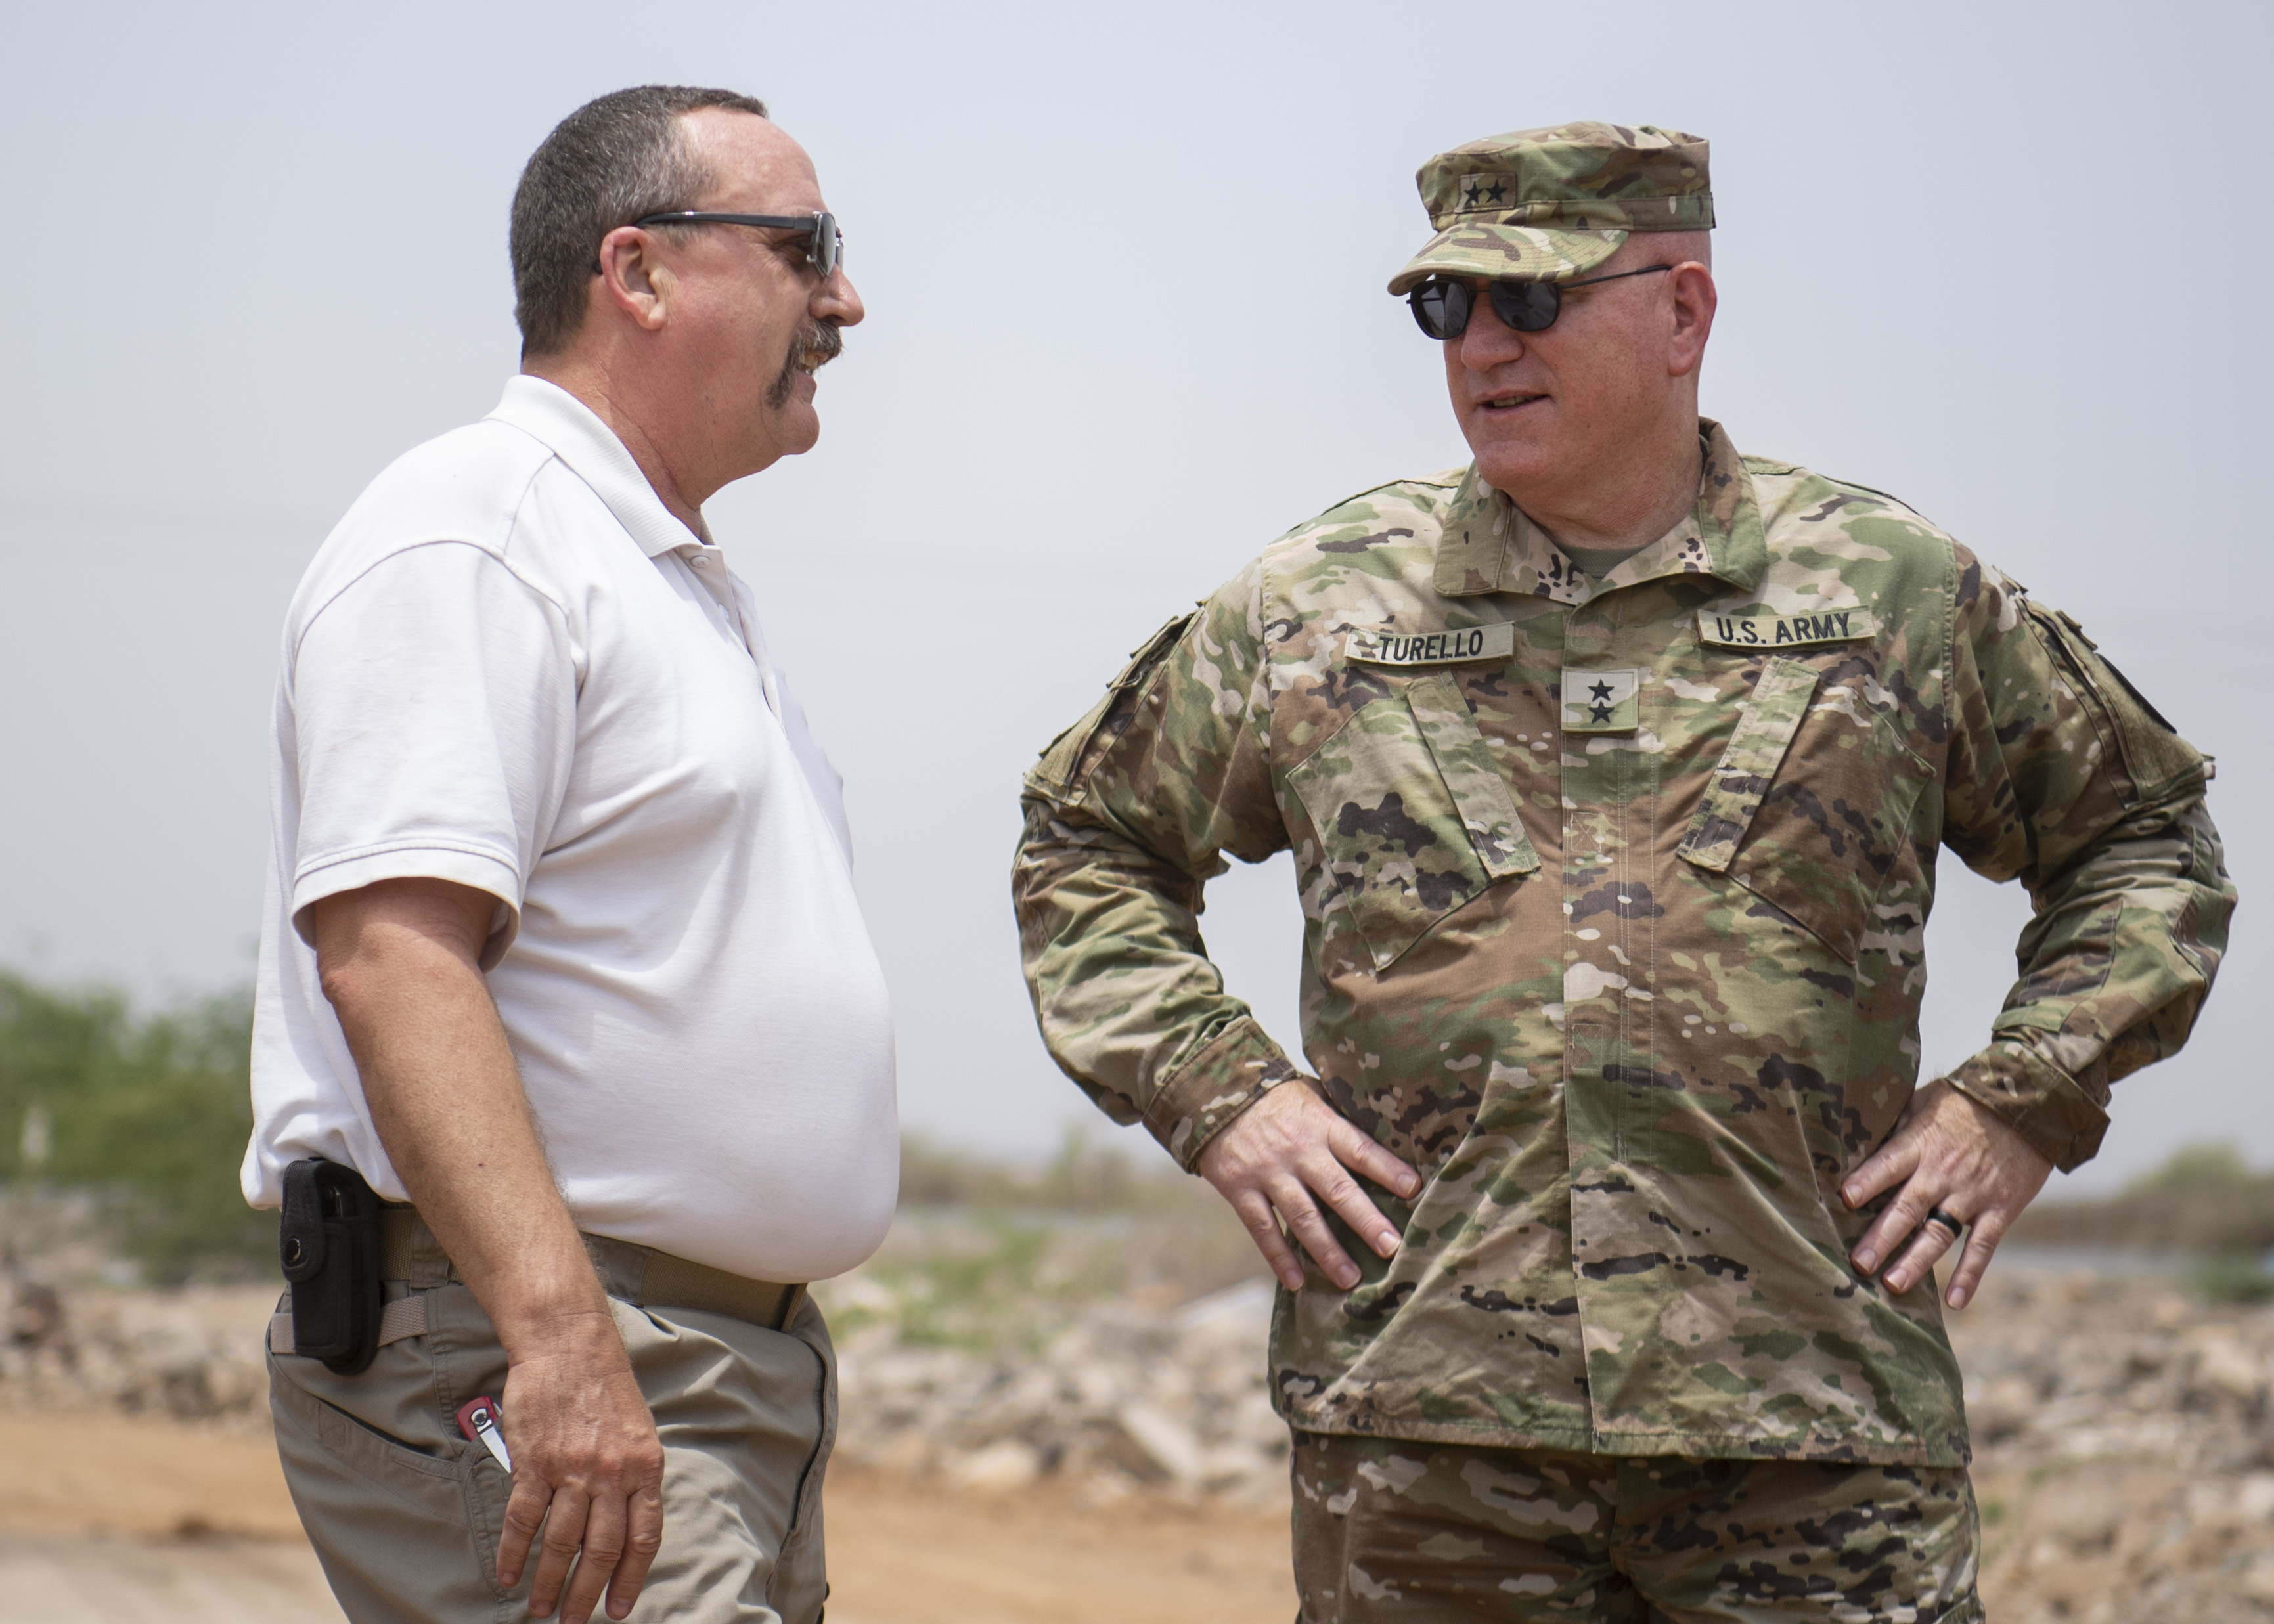 U.S. Army Maj. Gen. Michael Turello, commanding general, Combined Joint Task Force-Horn of Africa (CJTF-HOA), right, speaks with Stephen Skola, deputy fire chief, Camp Lemonnier Fire and Emergency Services, about the firefighting efforts at Douda landfill in Djibouti, Aug. 14, 2019. At the request of the government of Djibouti and in support of the U.S. Embassy Djibouti, CJTF-HOA engineers worked alongside Camp Lemonnier, Djiboutian, French and Chinese firefighters to help stop a fire at the landfill from spreading. (U.S. Air Force photo by Staff Sgt. J.D. Strong II)